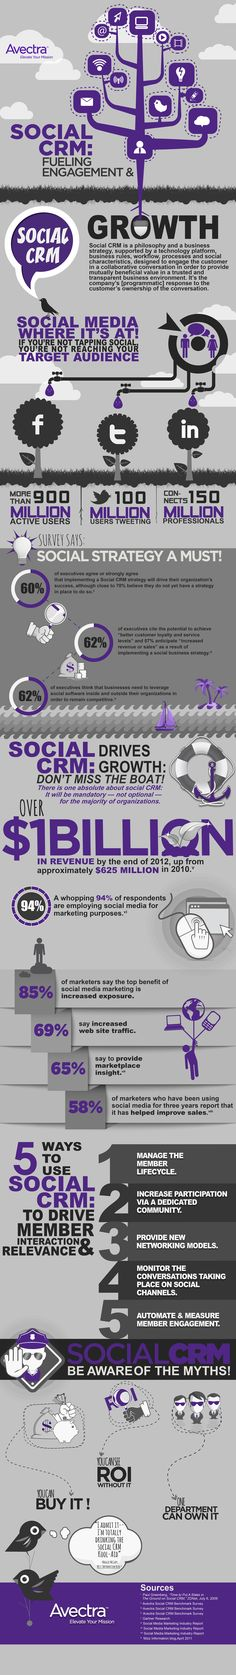 Social CRM: Fueling Engagement & Growth - #SocialMedia #Infographic